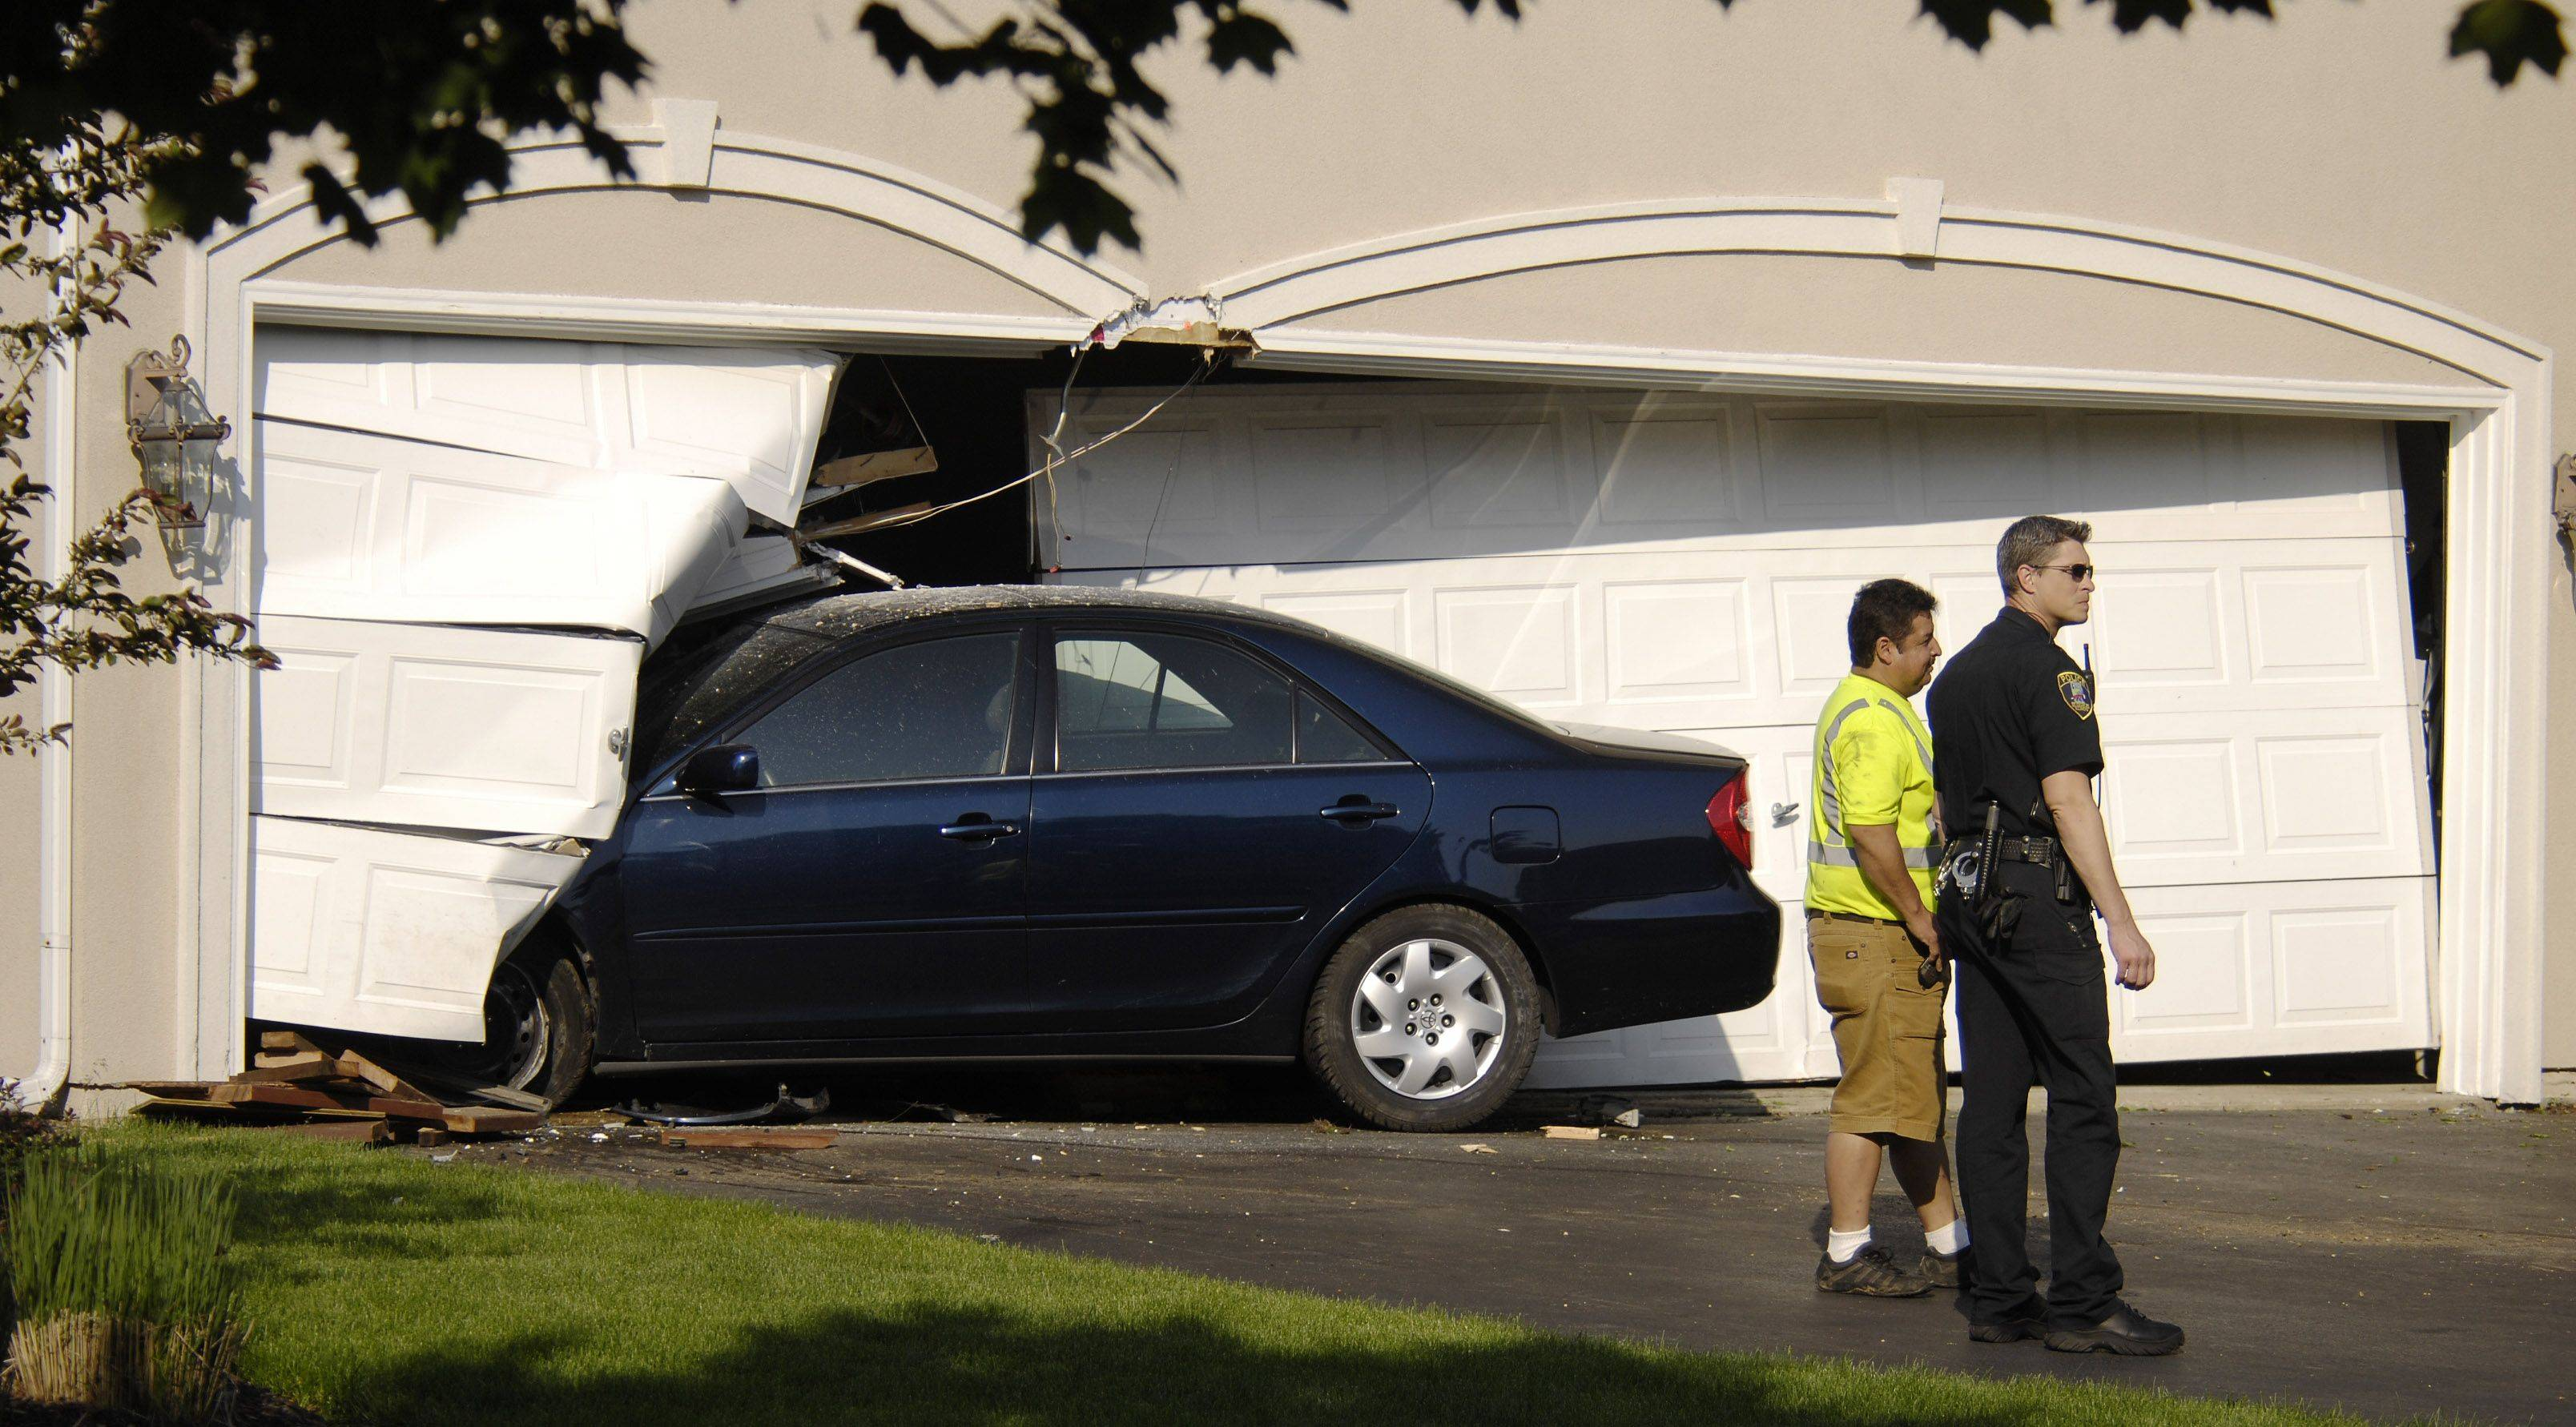 A car crashed into a home at the intersection of Fox Chase Blvd and Huntington Road in St. Charles about 7:15 a.m. Tuesday morning.